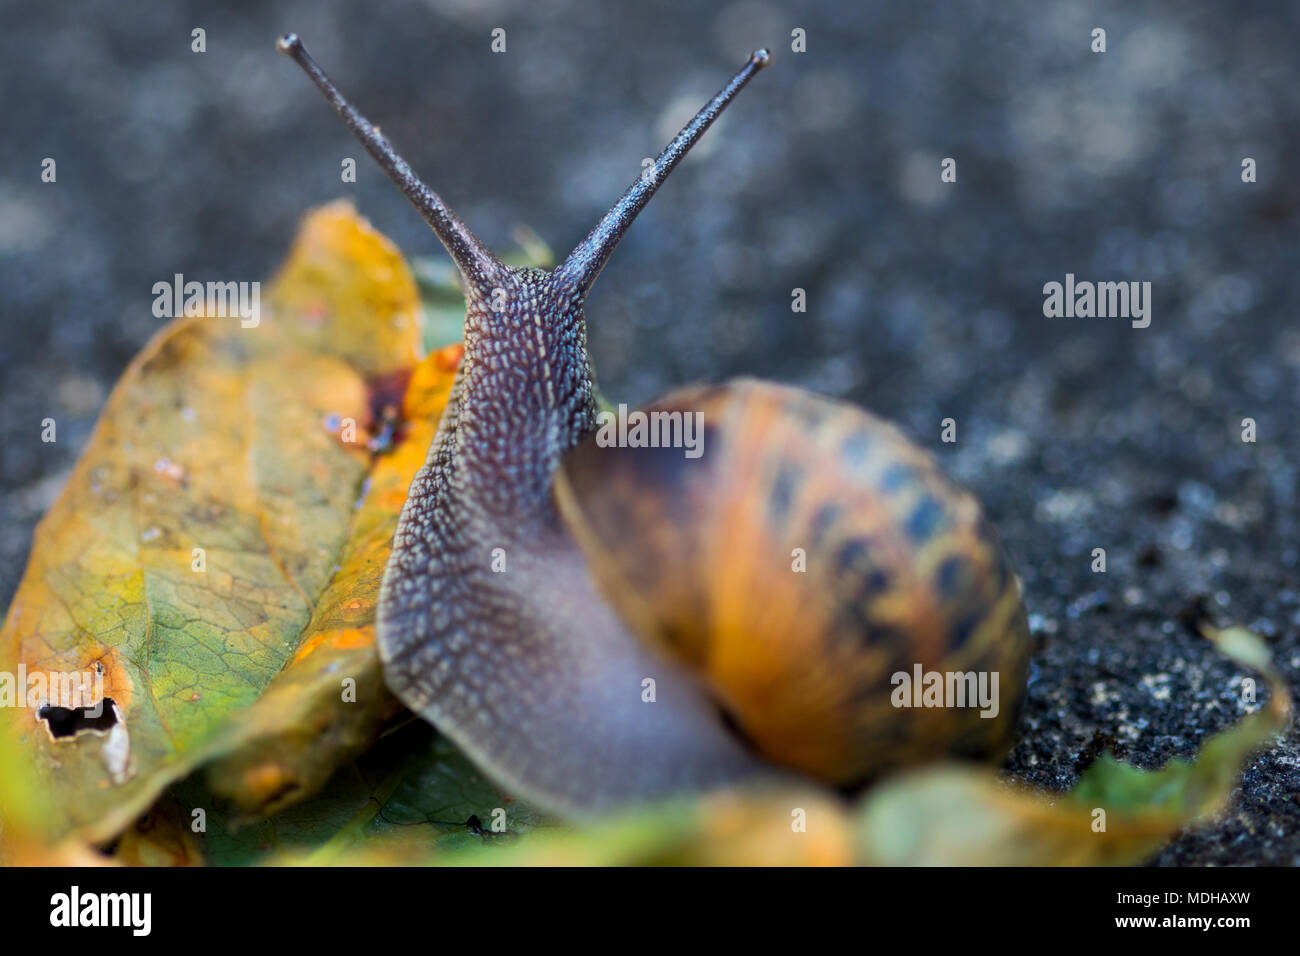 Garden snail mounts rotting leaf on concrete with tentacles extended in a 'v' shape with detail of scaly ventral foot and head - macro photography - Stock Image